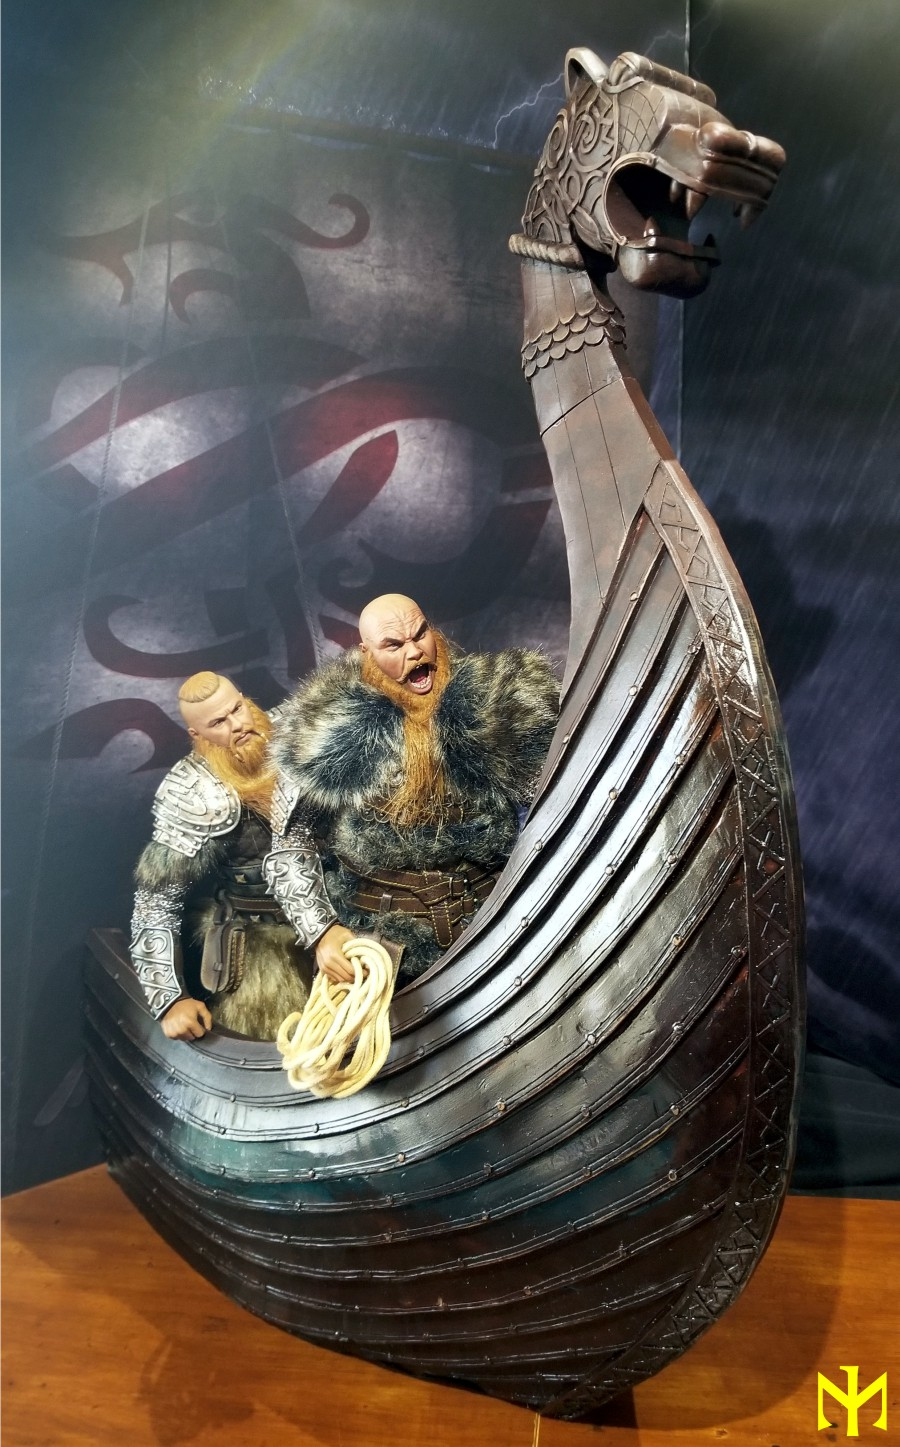 vikings - Vikings Vanquisher Viking Ship Diorama Coomodel Review Viking37